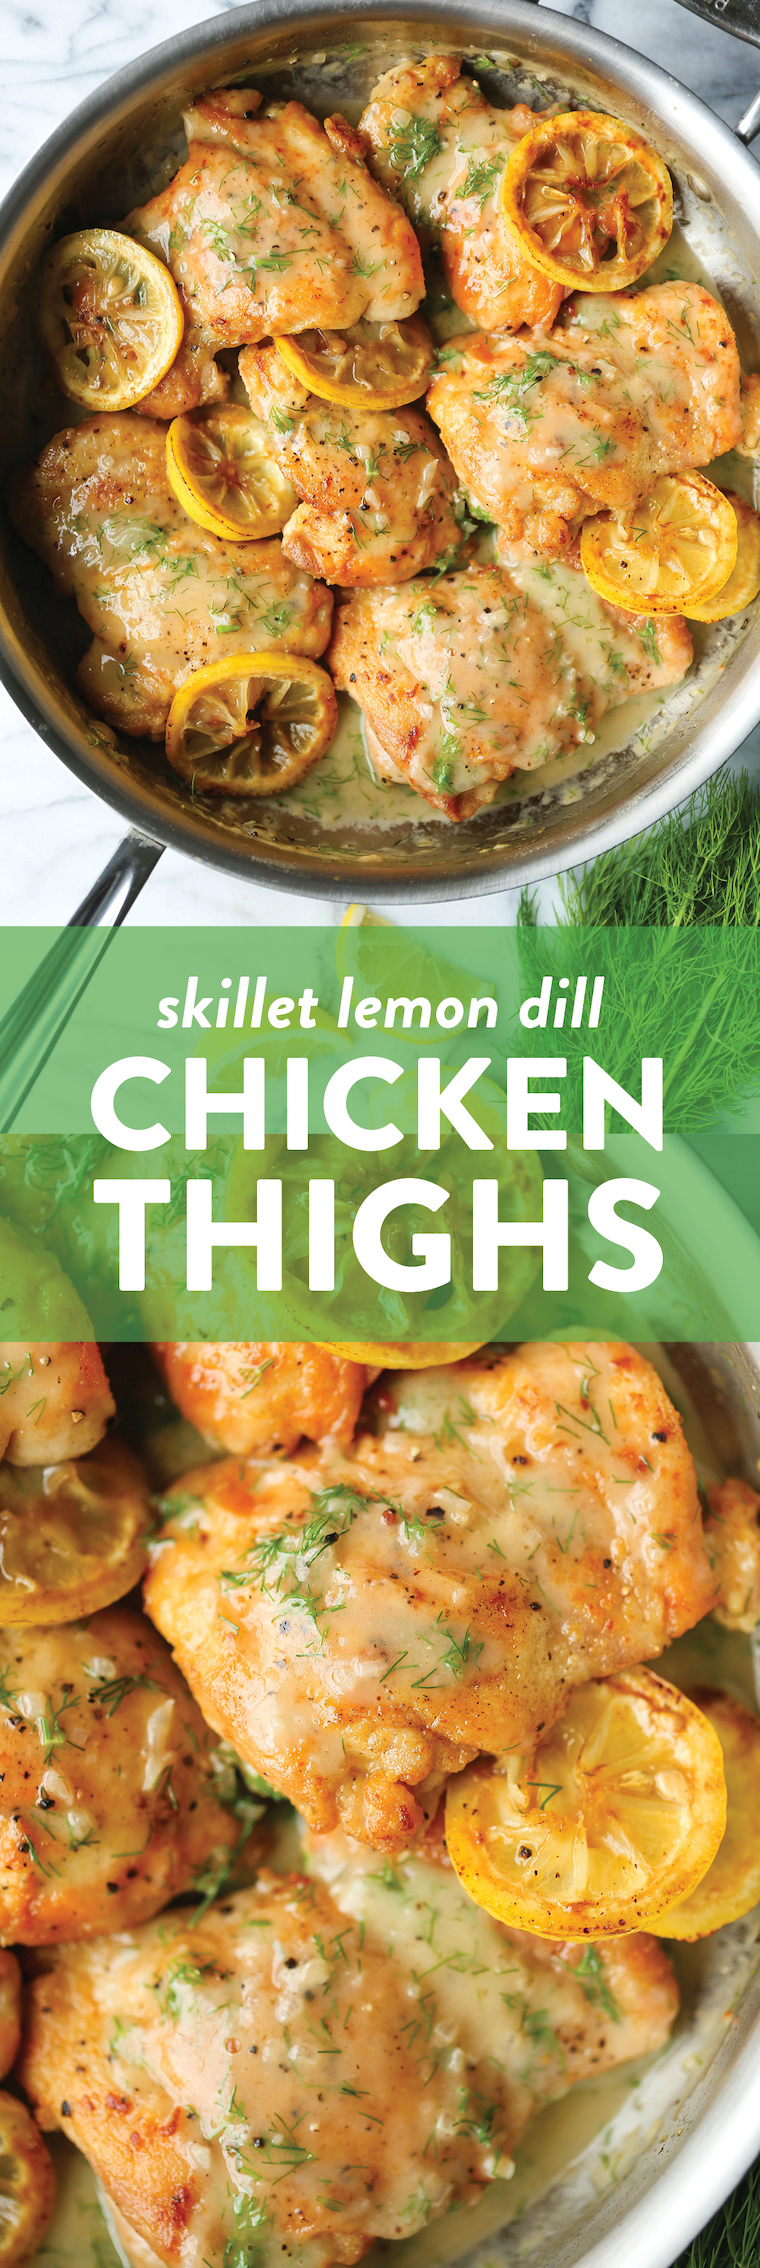 Skillet Lemon Dill Chicken Thighs